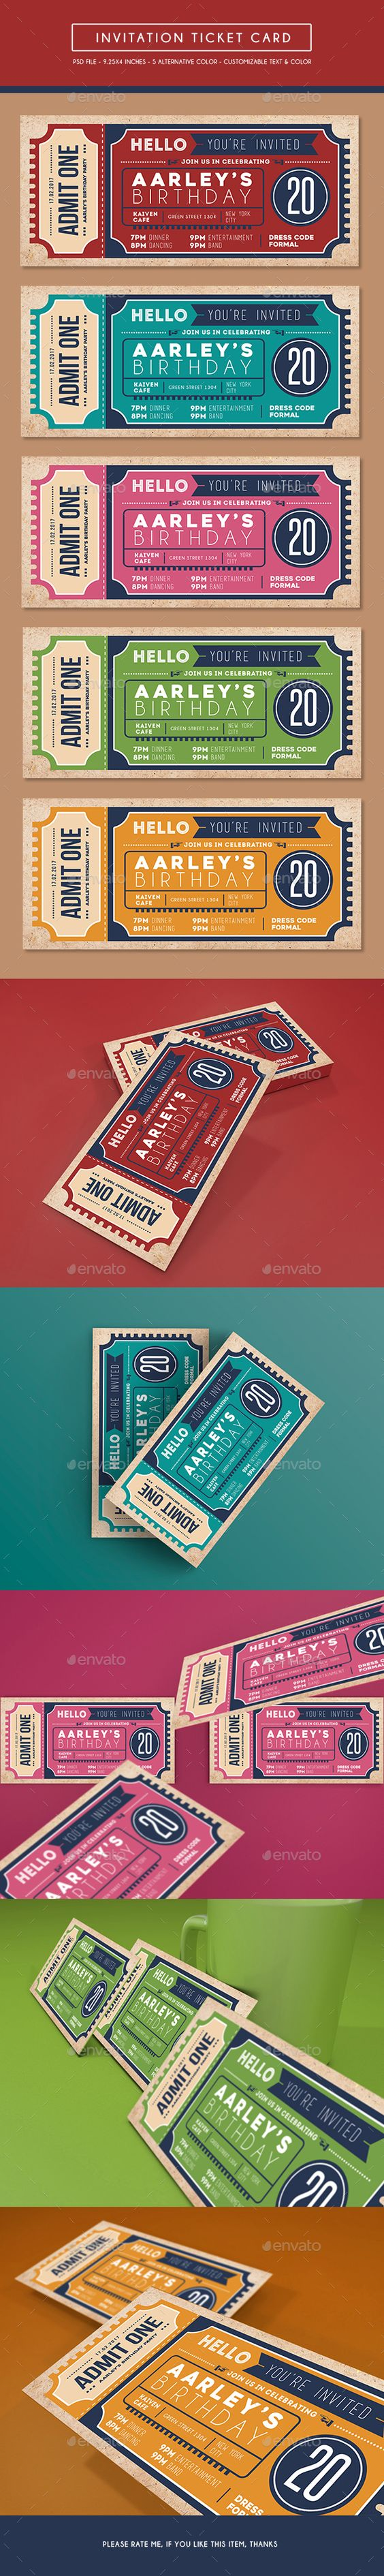 Concert Ticket Invitation Template Best Pind3Rrrr On Source Material  Pinterest  Typography .